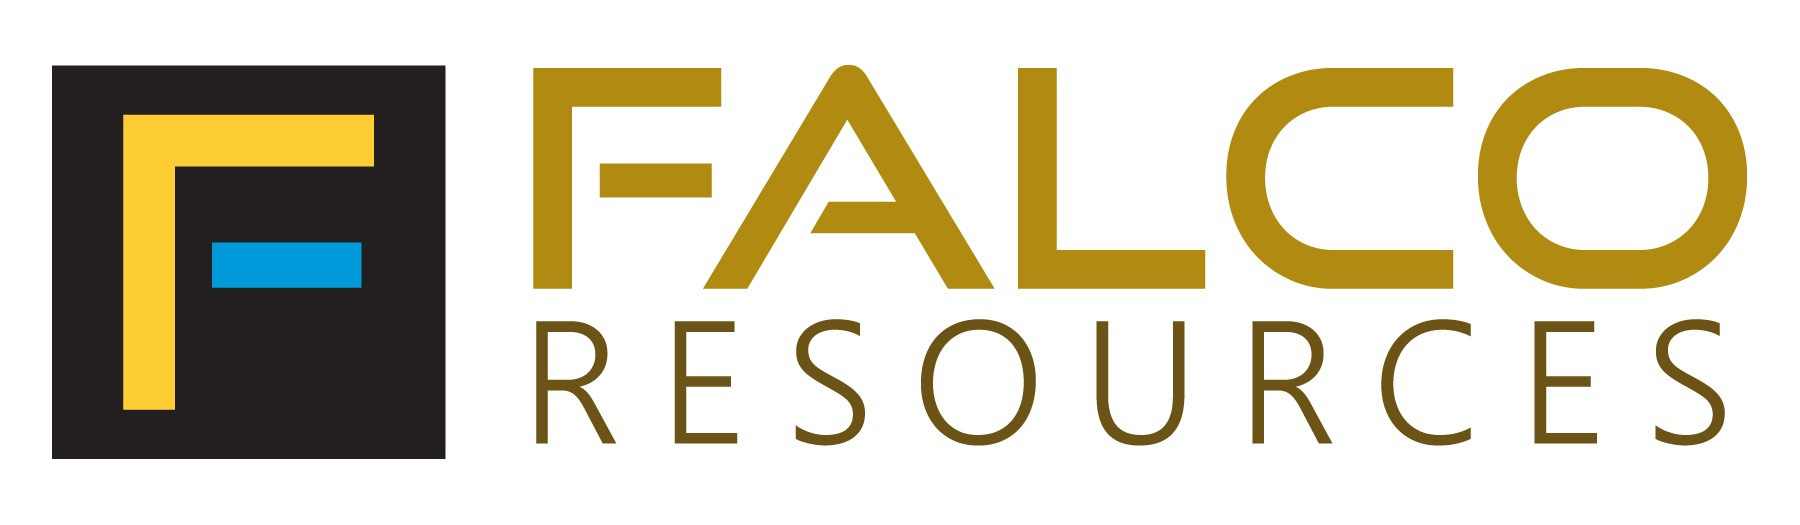 FALCO AND GOLDEN QUEEN ANNOUNCE GOLDEN QUEEN SHAREHOLDERS' APPROVAL AT THE SPECIAL MEETING